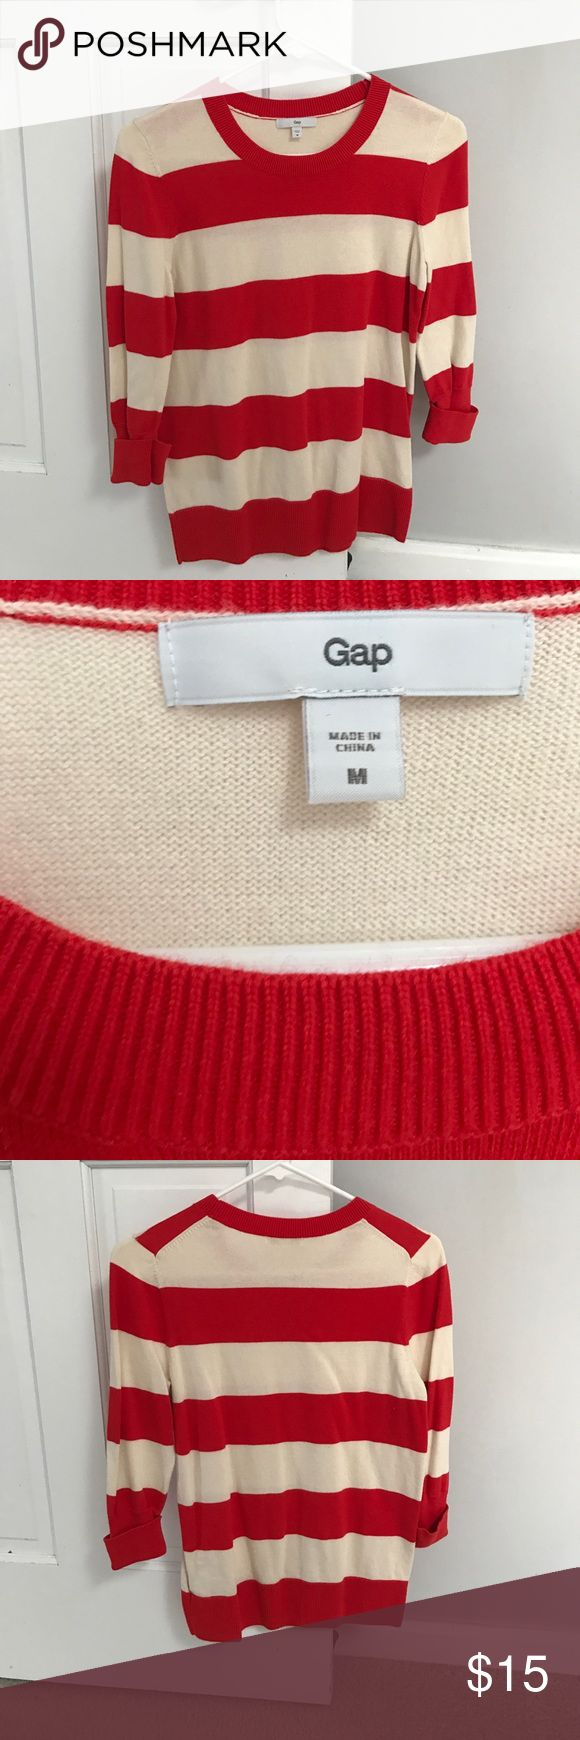 Gap sweater More like a coral red. Rugby stripe. Worn once! Fits more like a S GAP Sweaters Crew & Scoop Necks